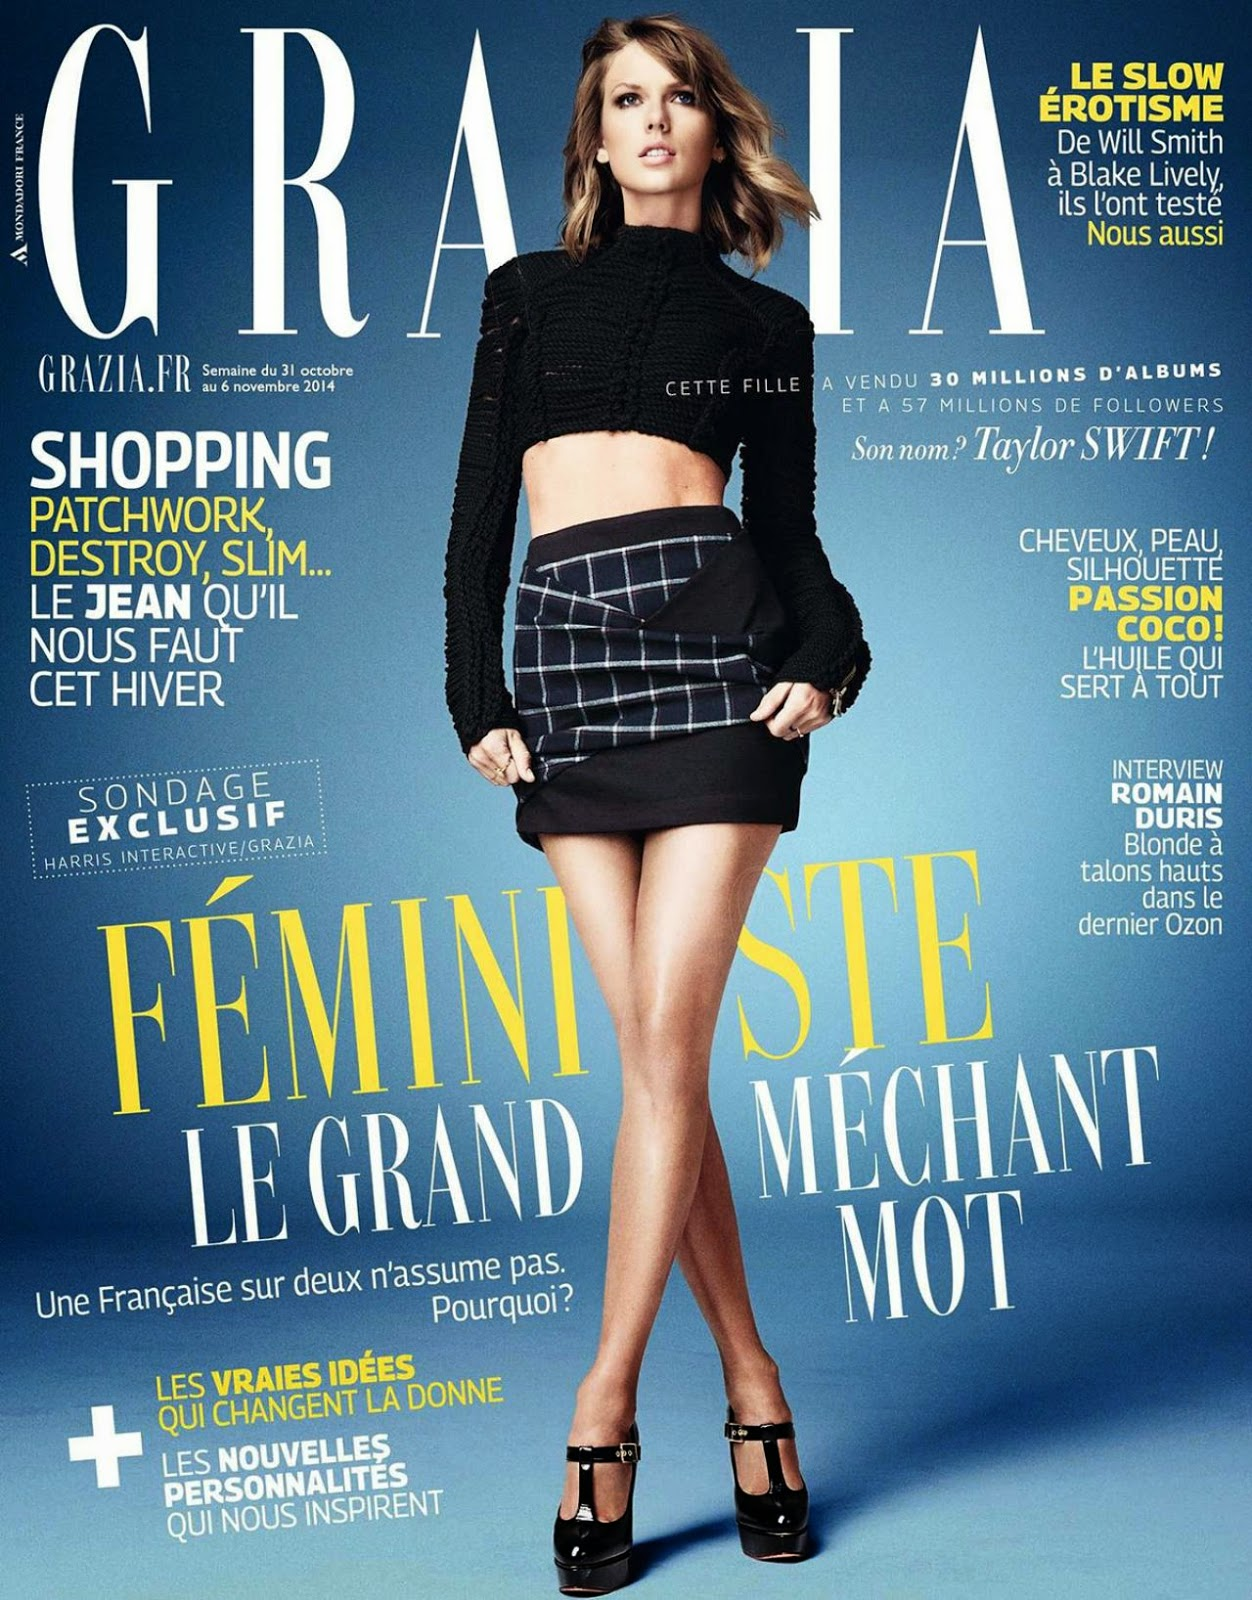 Taylor Swift covers Grazia magazine November 2014